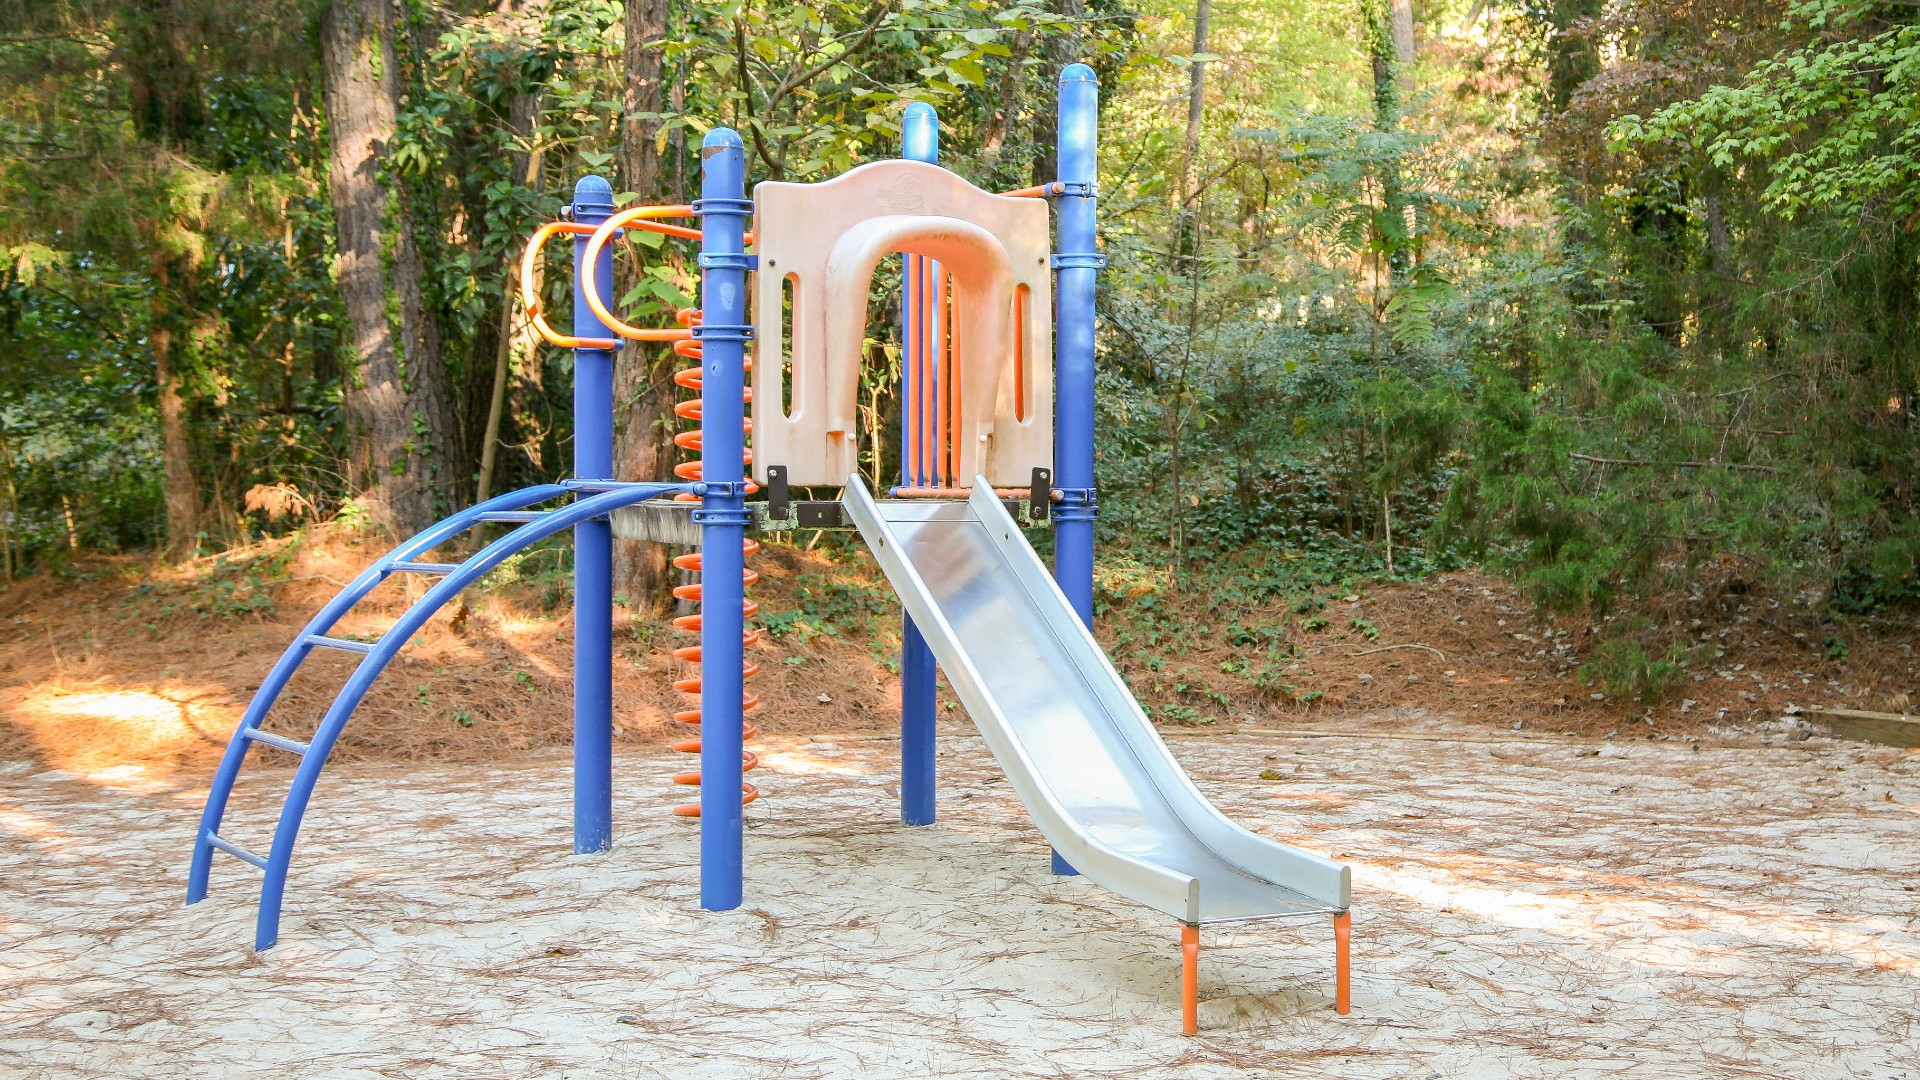 Playground for ages 2 to 5 at Glen Eden Pilot Park